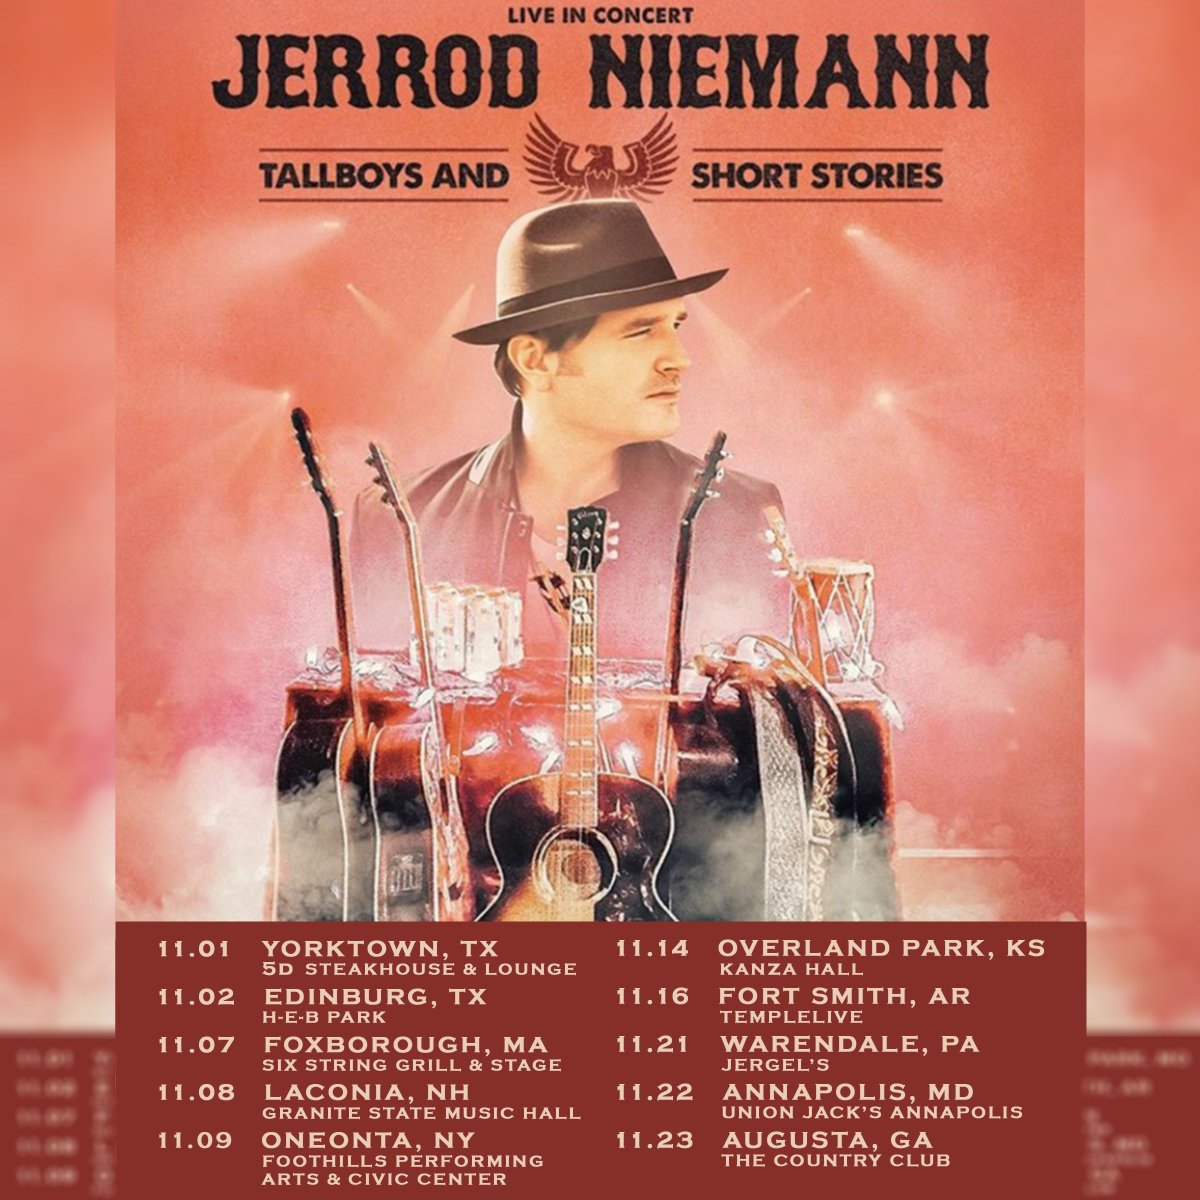 Come party with us! #jerrodniemann #country #countrymusic #livemusic #countrygirl #countryboy #concert